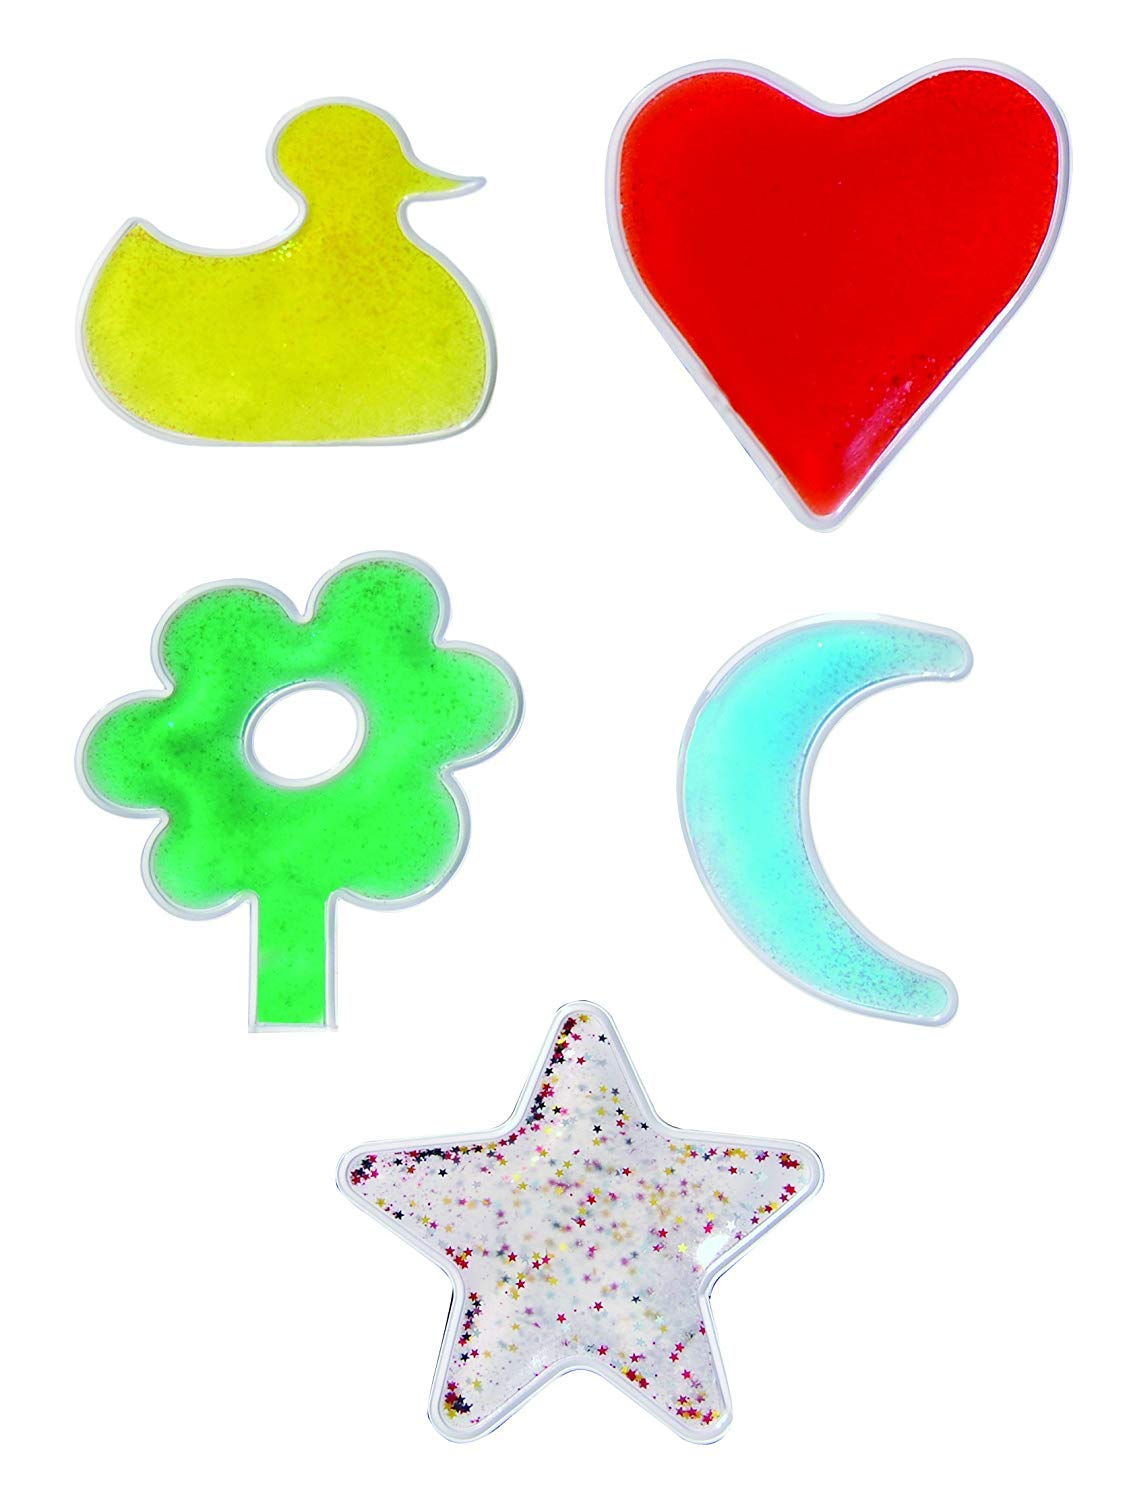 Sensory Stimulation Clear Geometric Gel Shapes